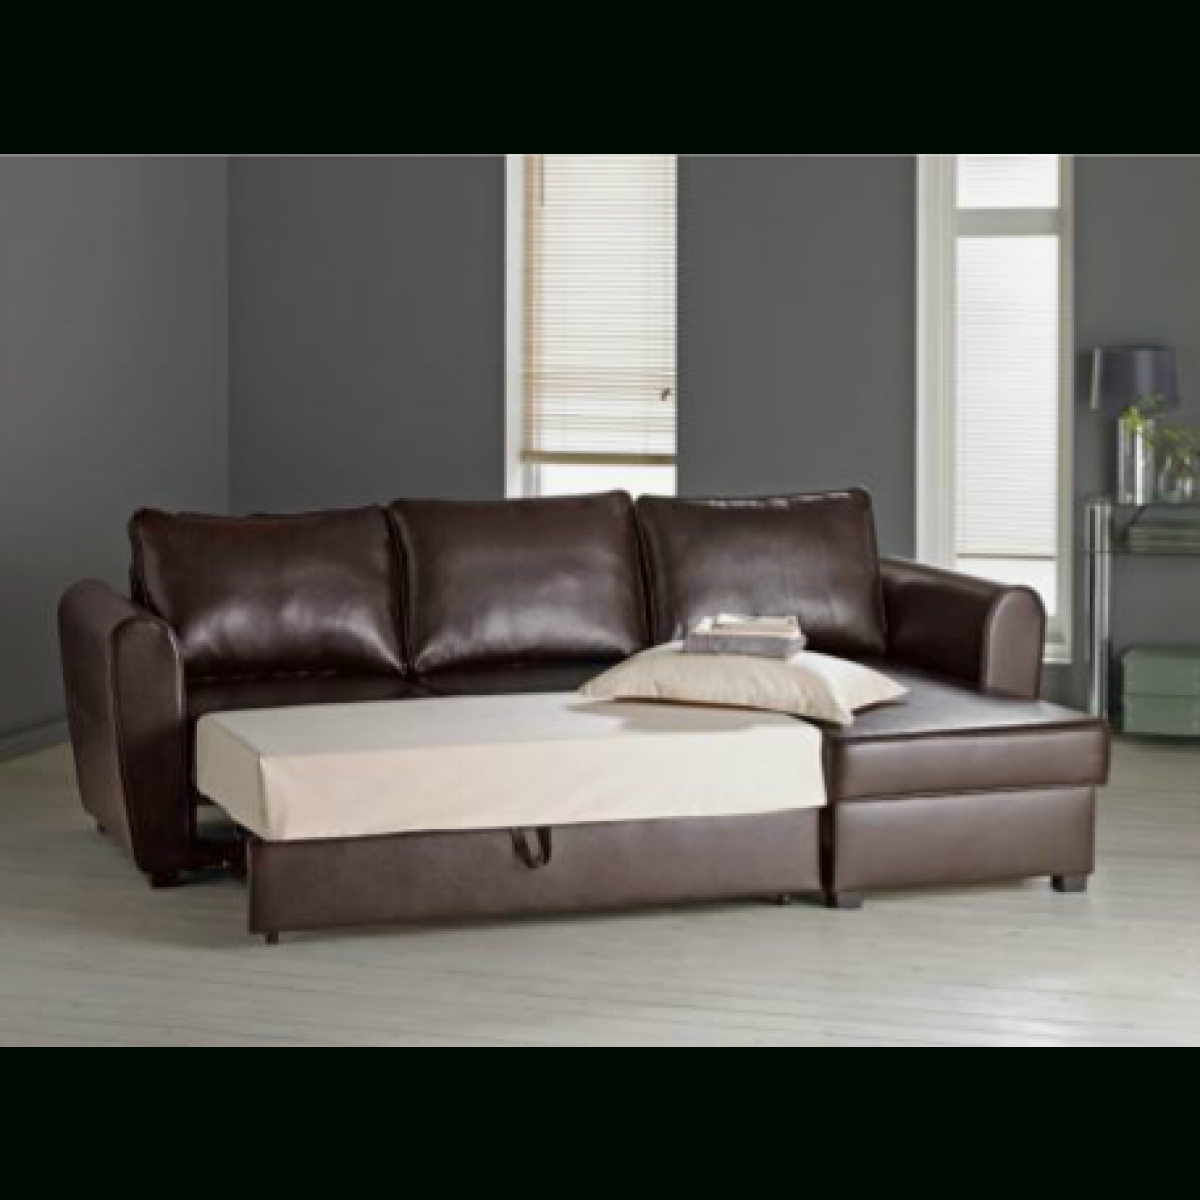 Siena Leather Effect Corner Sofa Bed With Storage  Chocolate Intended For Leather Sofa Beds With Storage (Image 17 of 20)